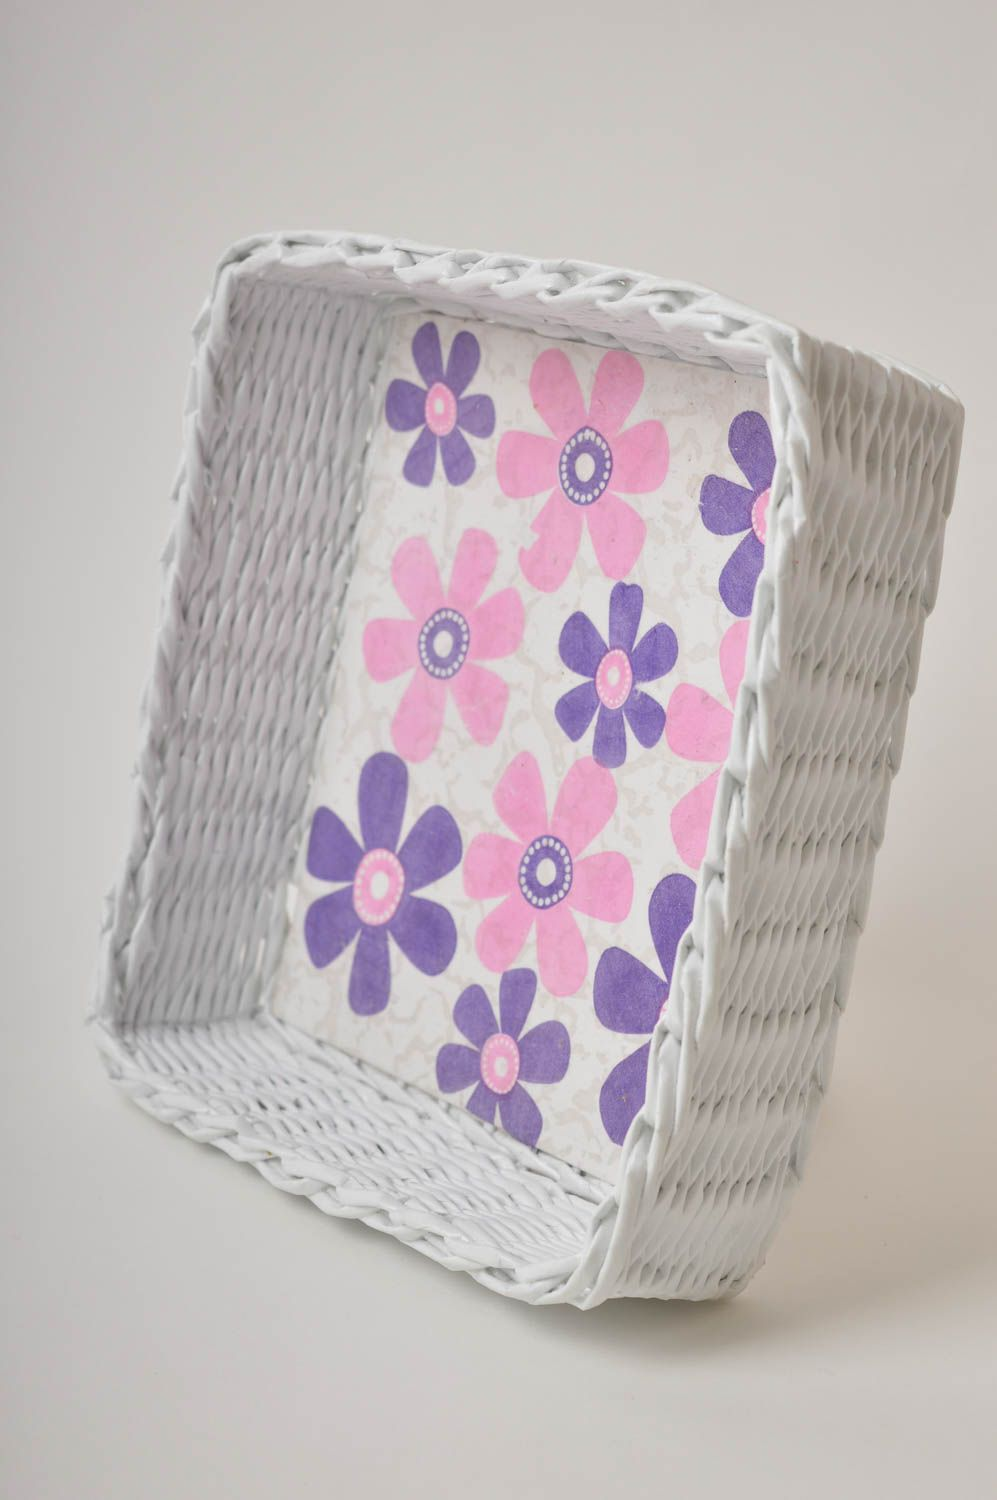 Handmade decorations woven basket paper basket gifts for women home decor photo 4